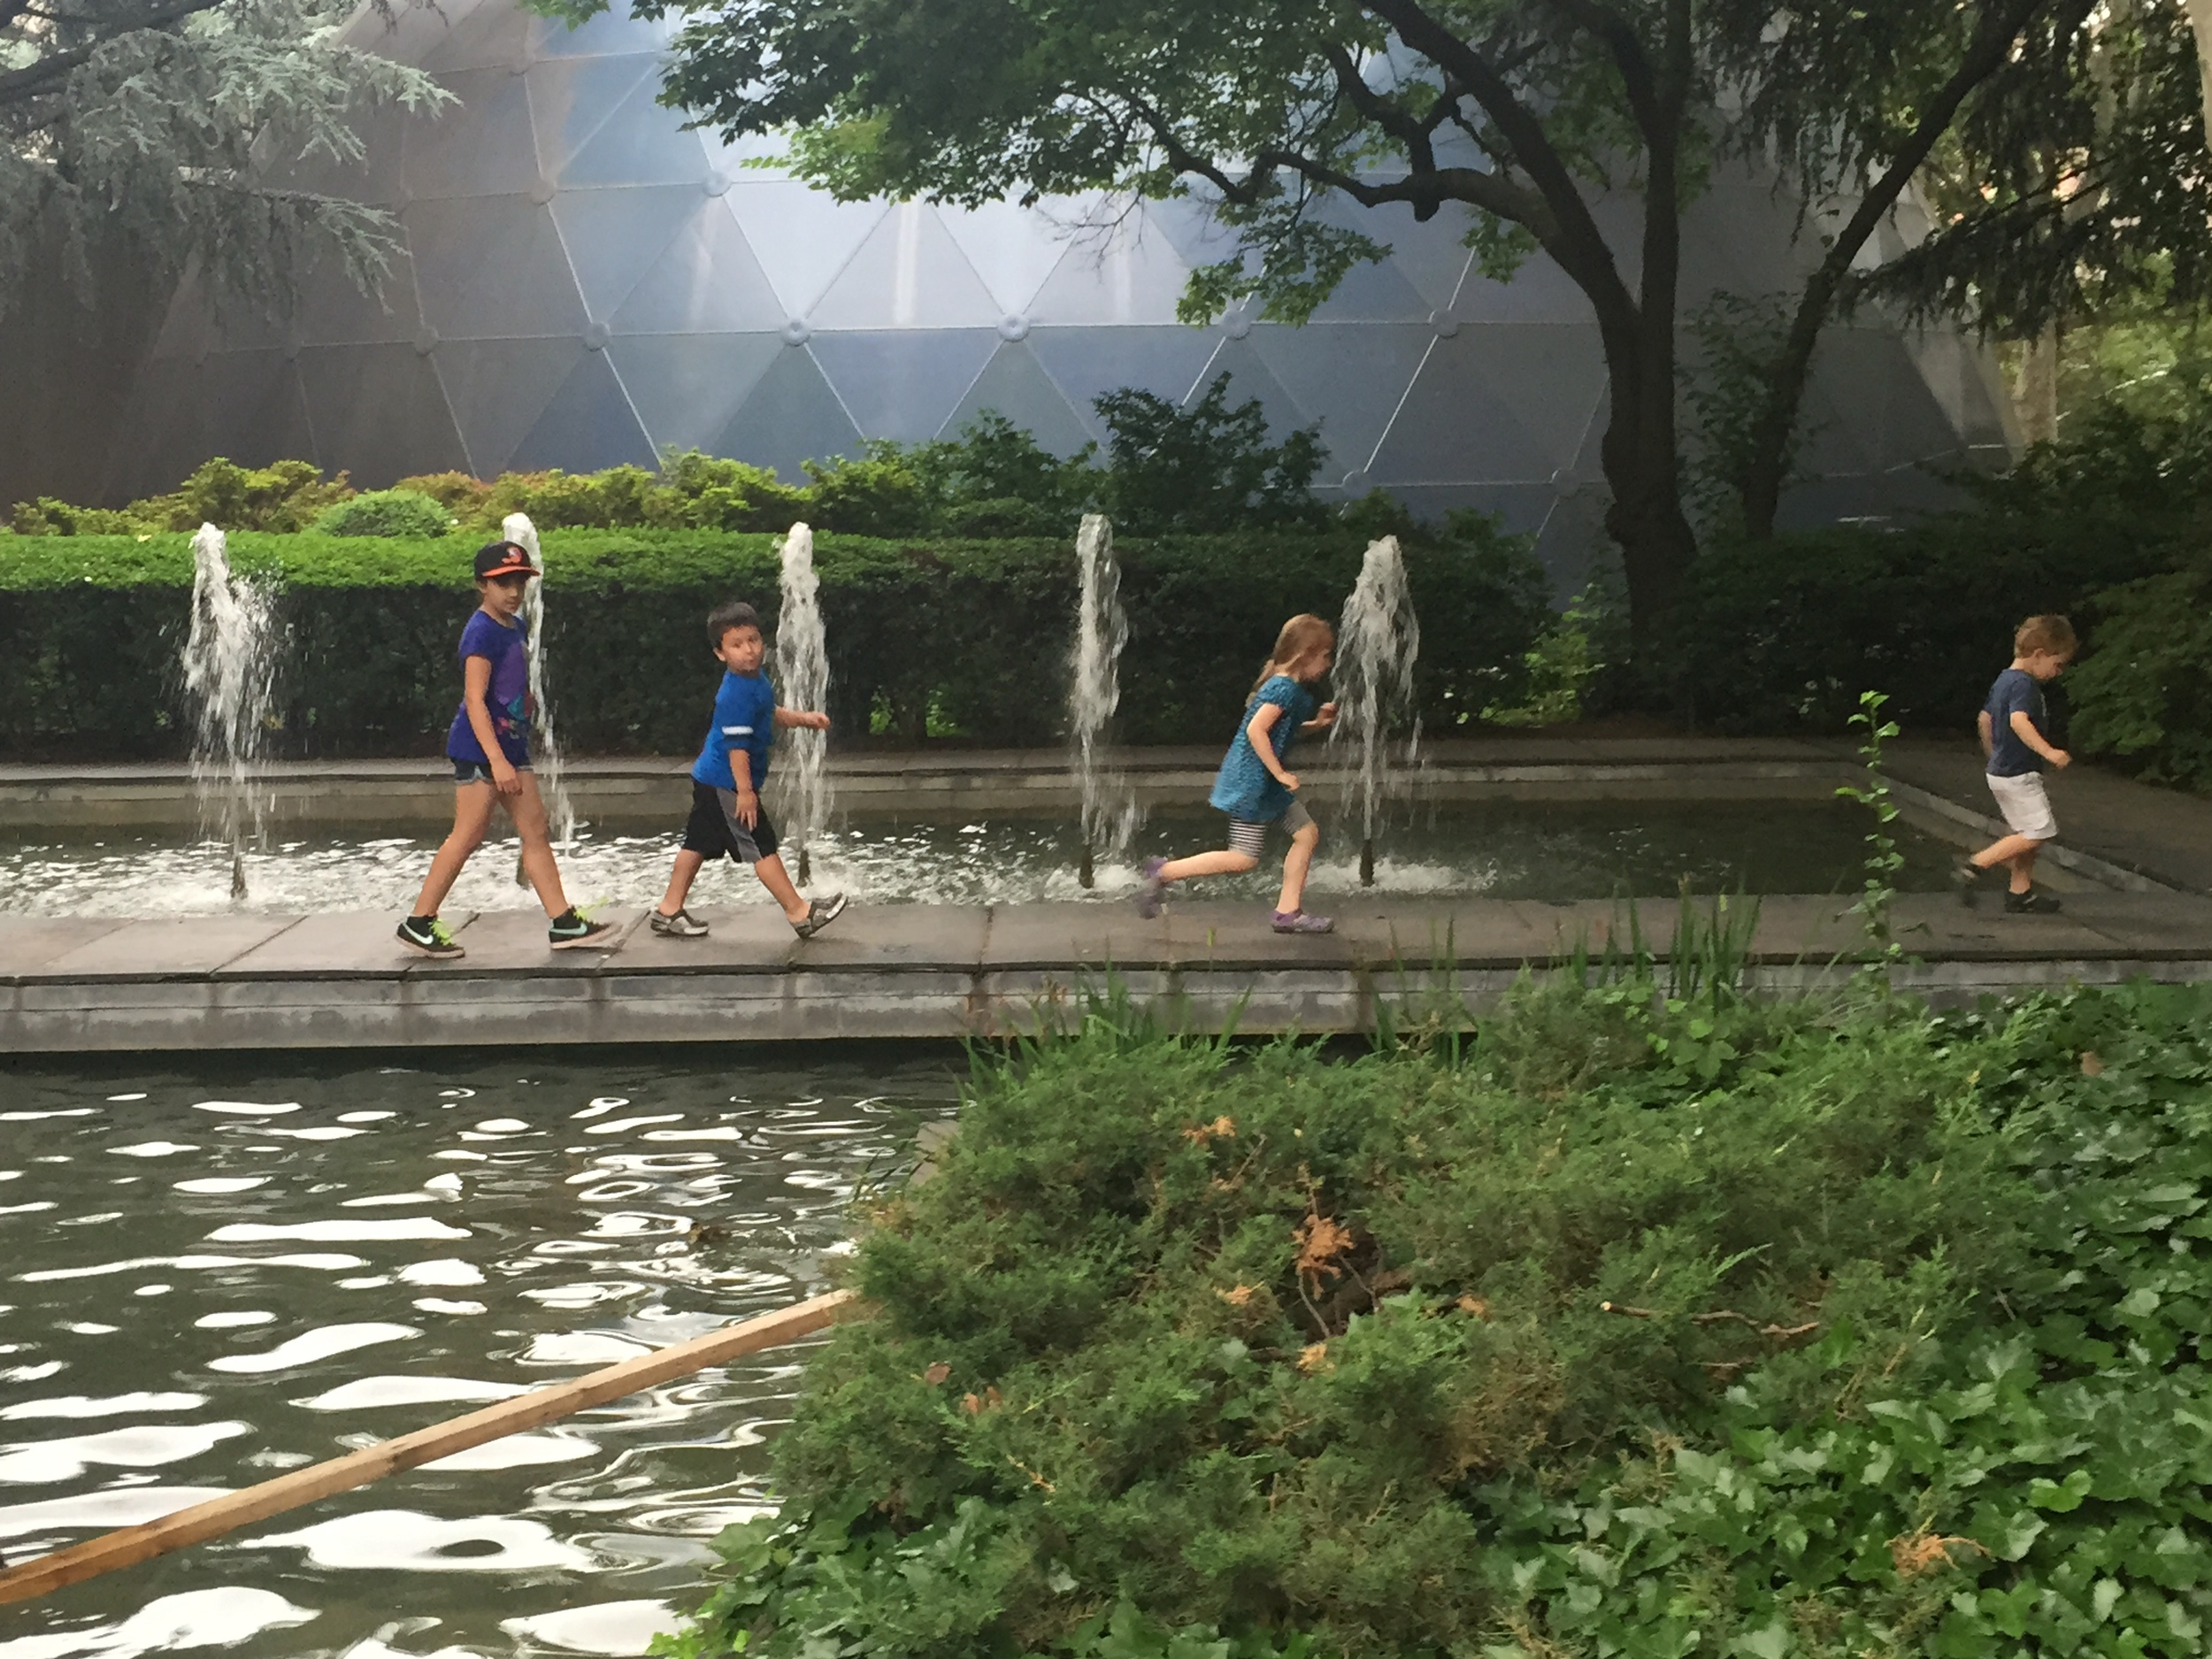 Newest lab members had a great time marching in the Philosopher's garden at the Rockefeller University